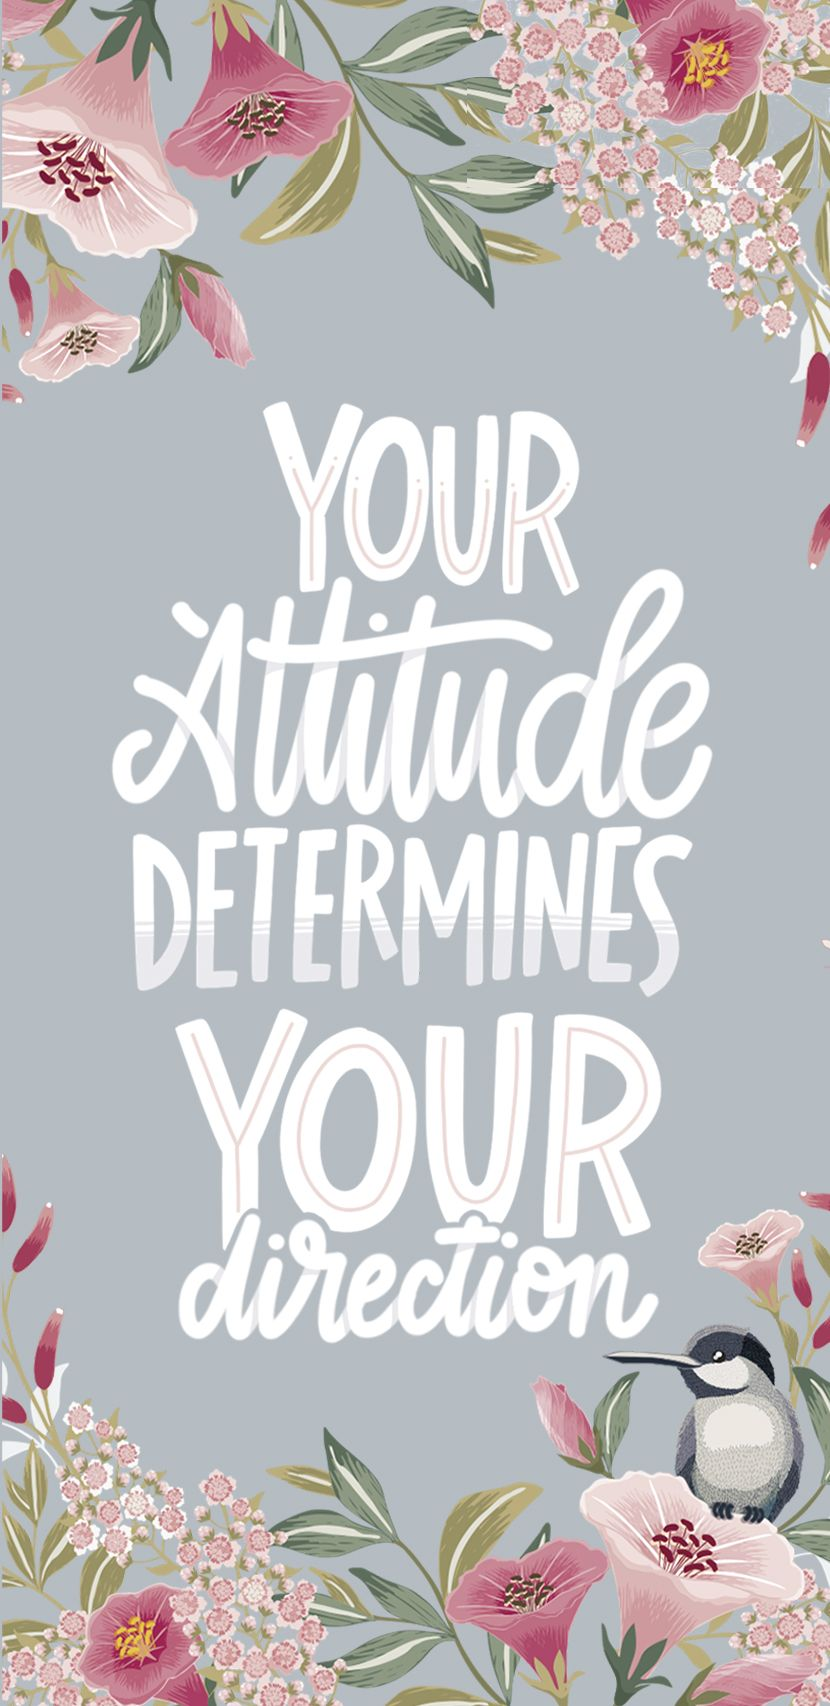 Motivational Quotes Motivation Quotes Board Quotes Pastel Colors Wallpaper Scree Iphone Wallpaper Travel Positive Quotes Wallpaper Motivational Wallpaper